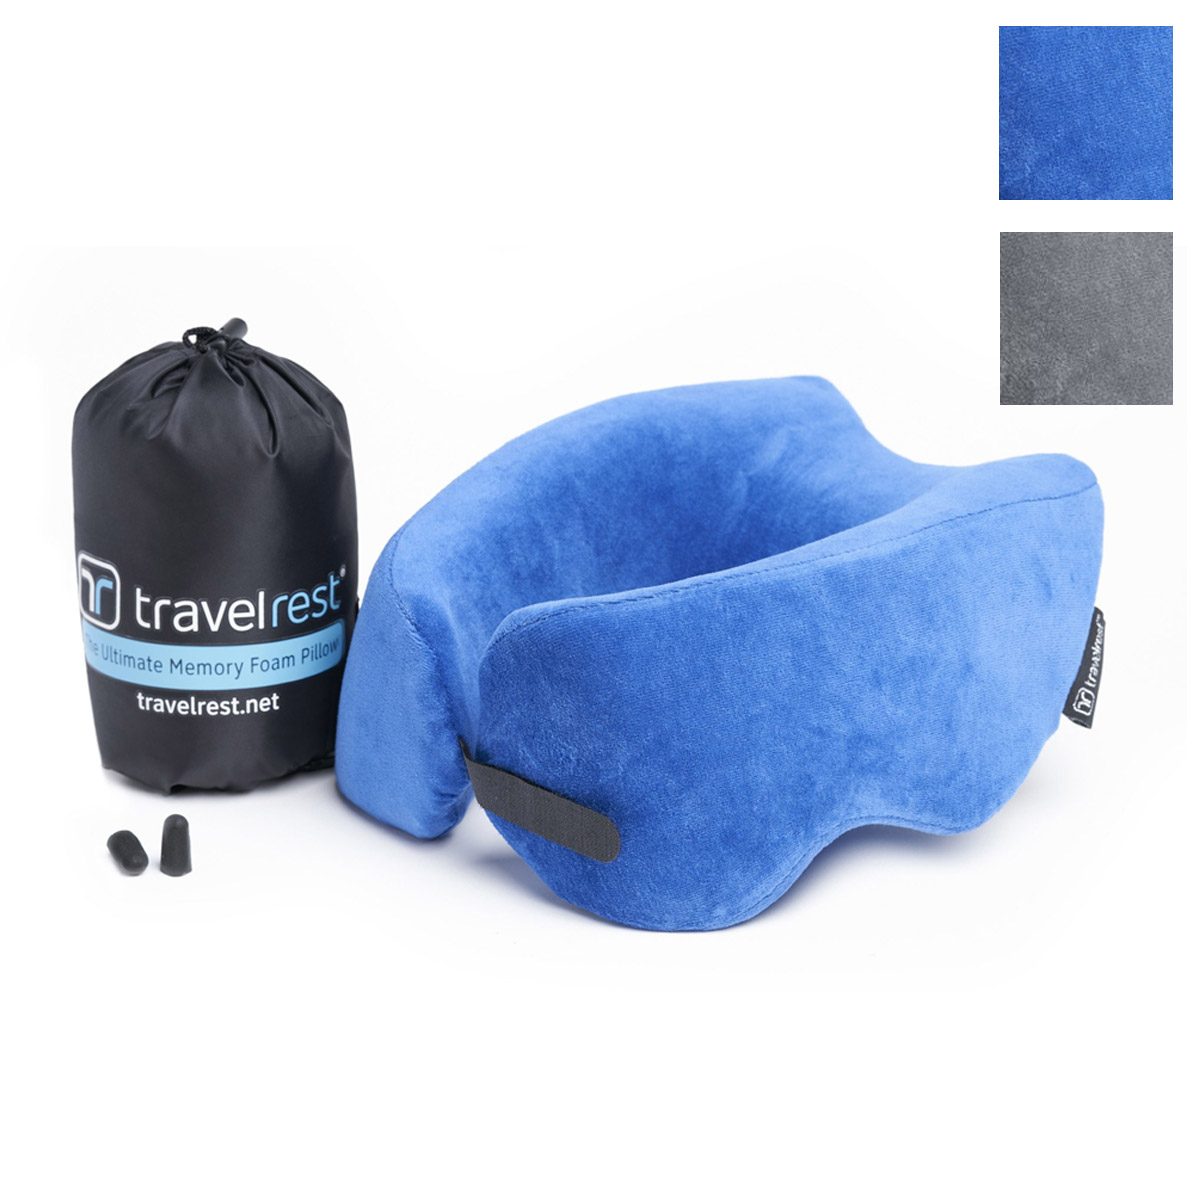 Travelrest Nest Ultimate Neck Memory Foam Travel Pillow